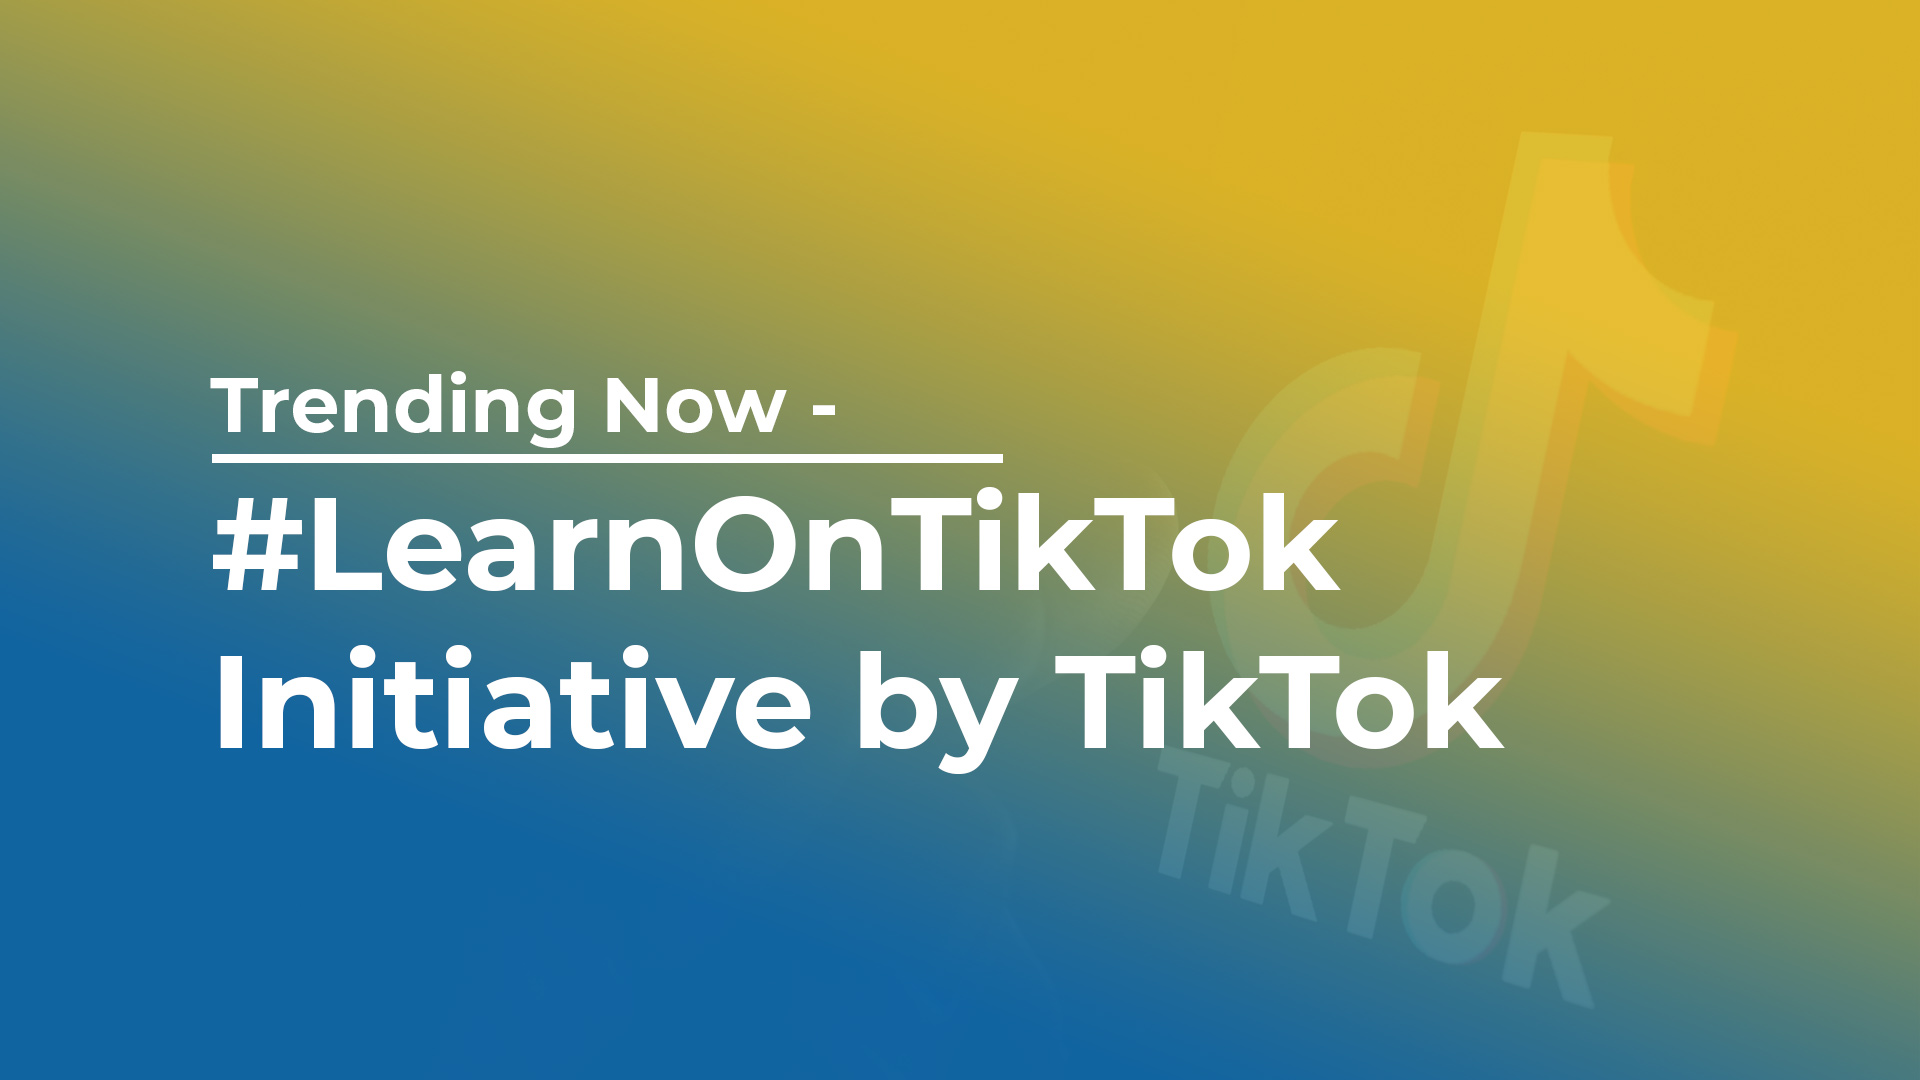 Trending Now - #LearnOnTikTok Initiative by TikTok